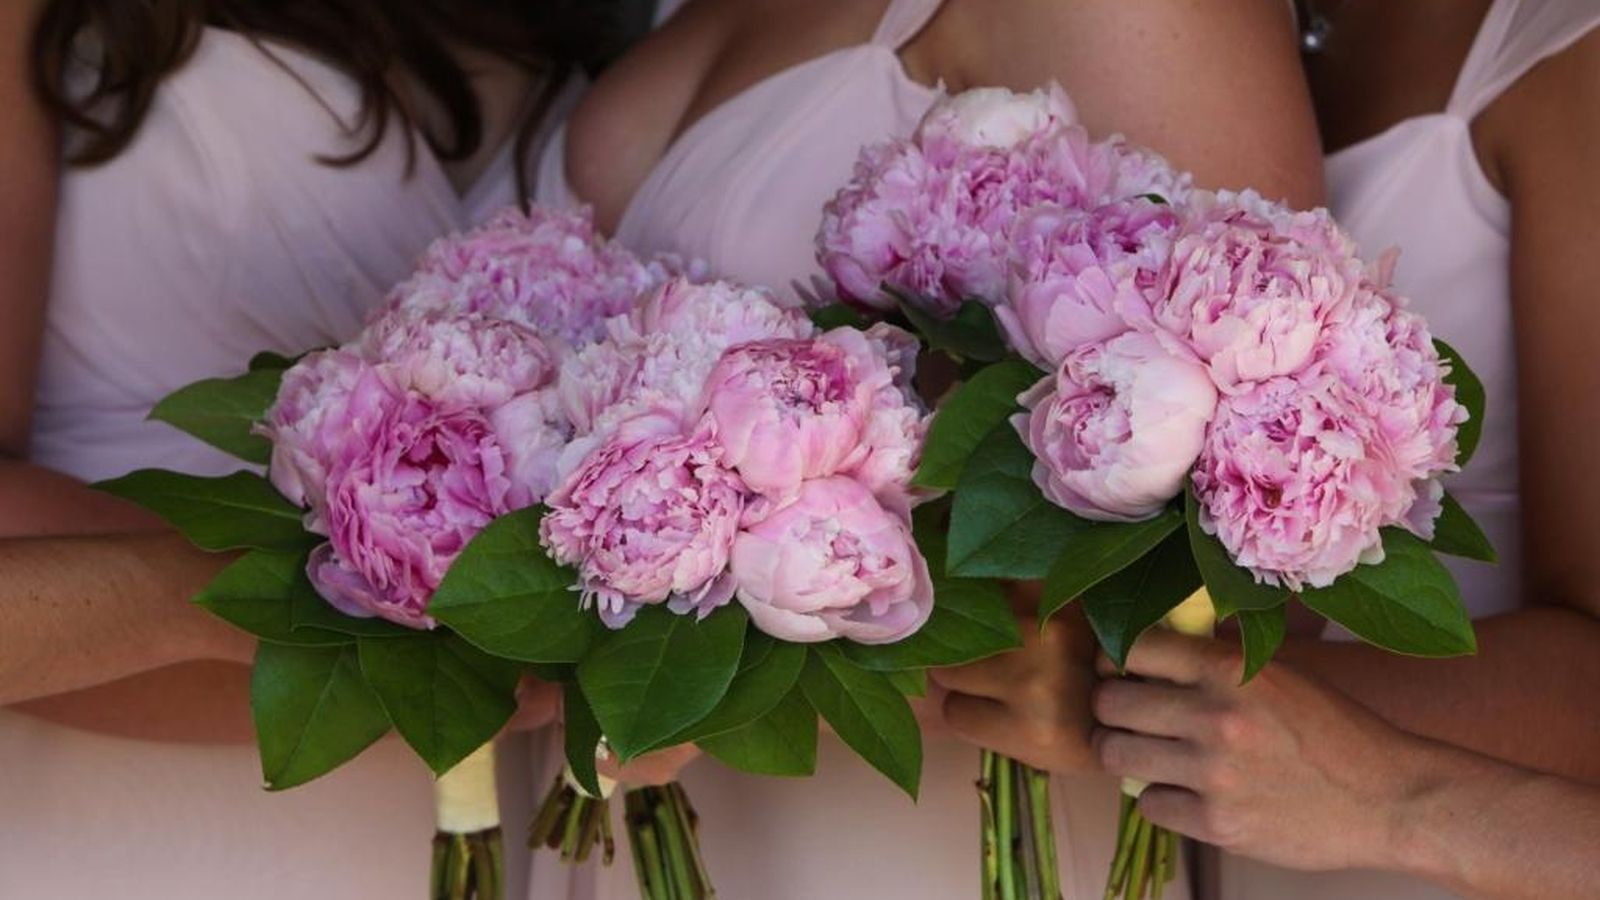 Flower arrangements for Bridesmaids at The St. Regis Mardavall Mallorca Resort